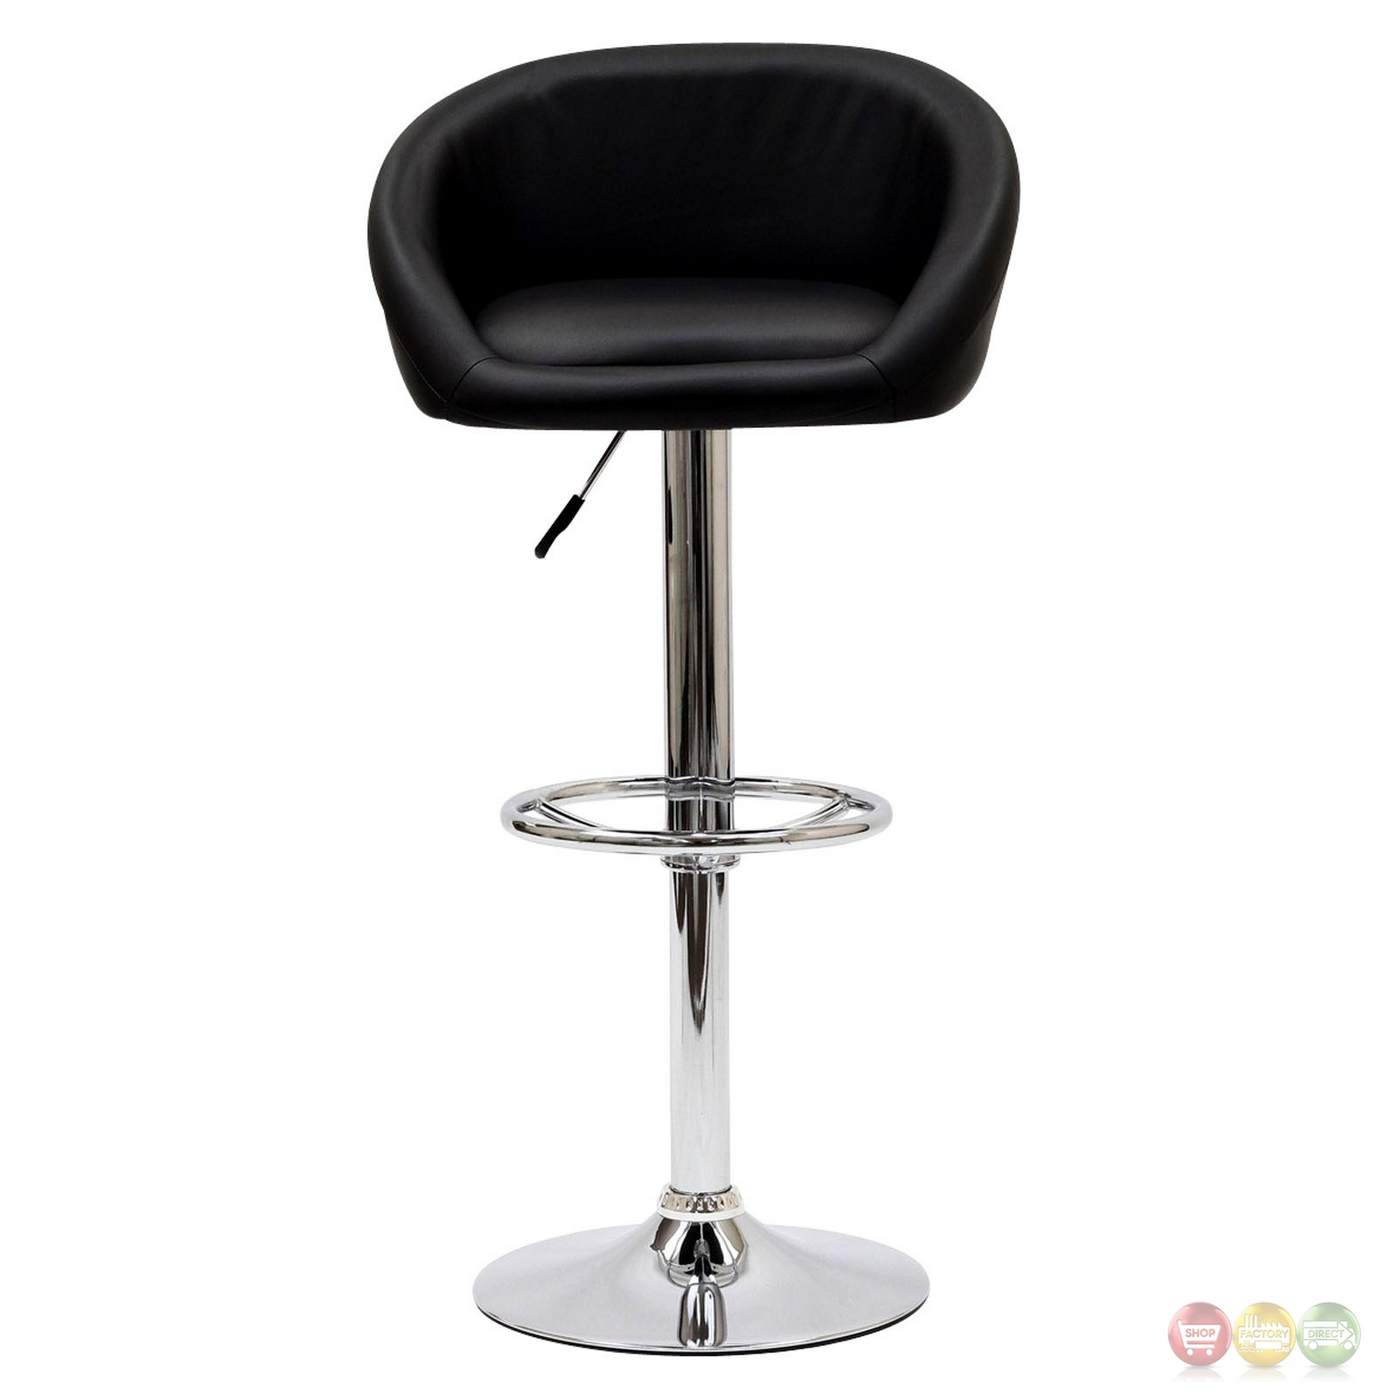 Marshmallow Vinyl Upholstered Bar Stool W Chrome Base